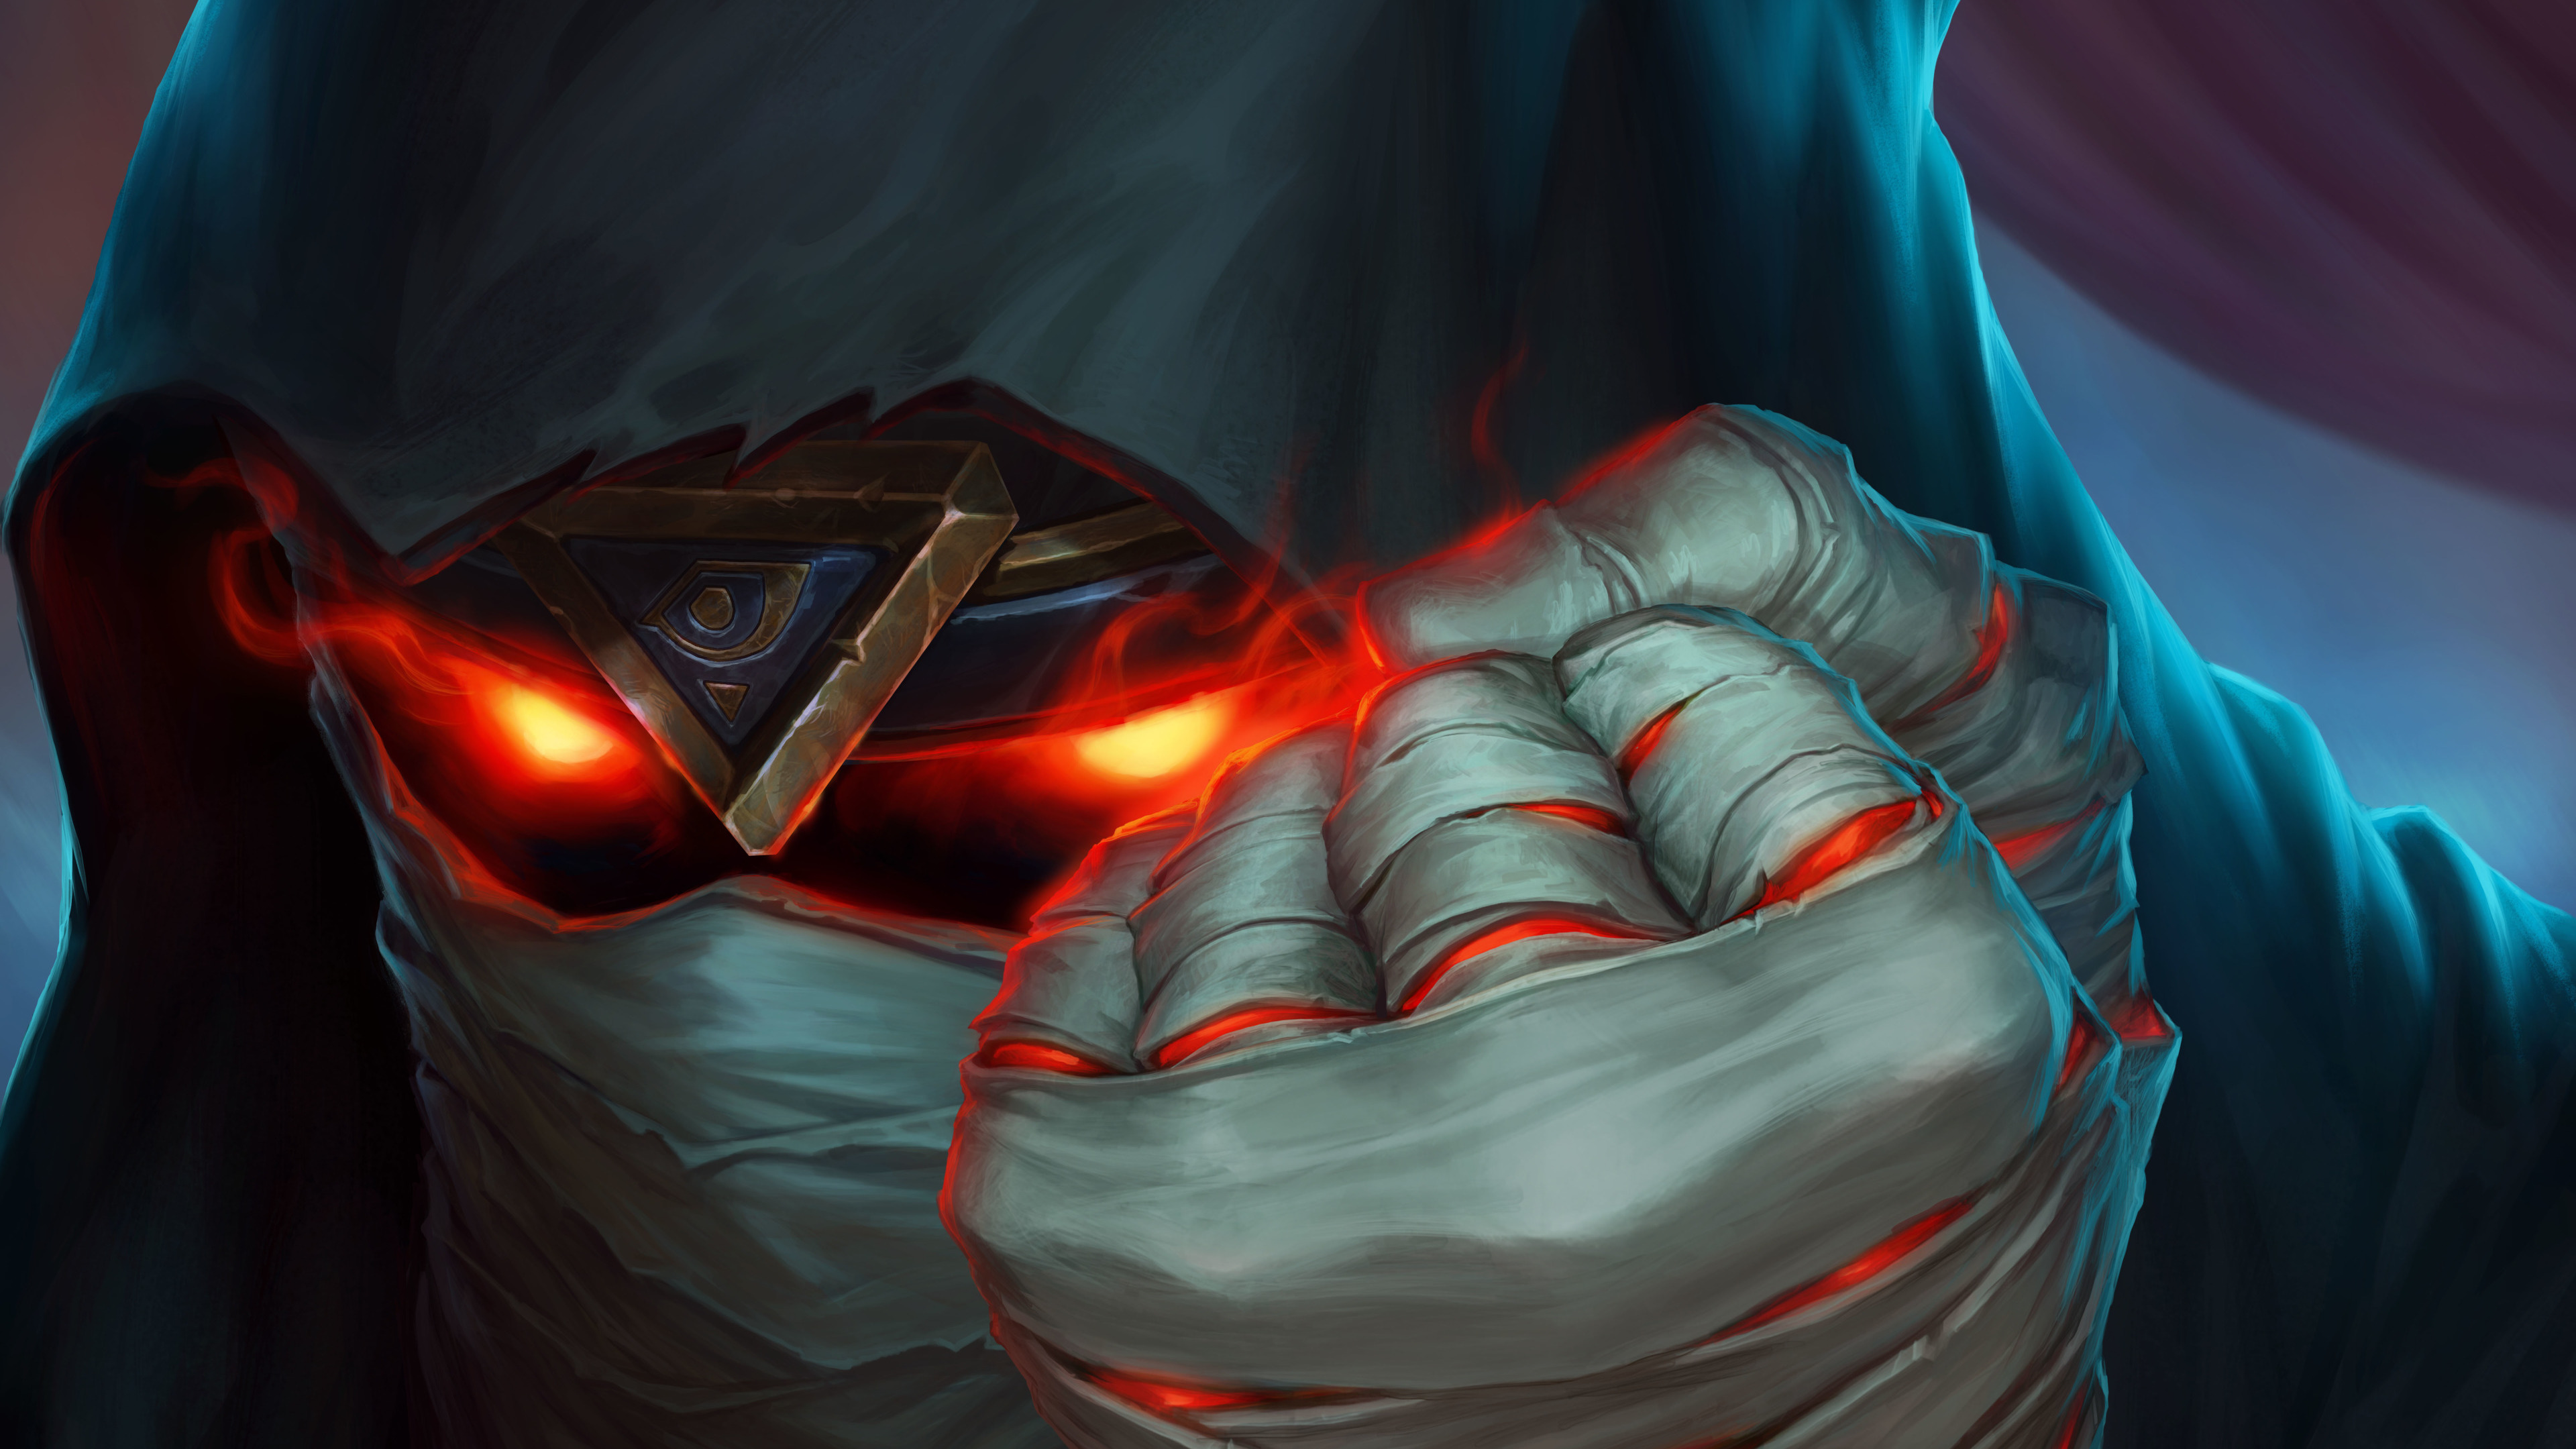 conspiracy of shadows hearthstone 4k 1554244340 - Conspiracy Of Shadows Hearthstone 4k - hearthstone wallpapers, hd-wallpapers, games wallpapers, 4k-wallpapers, 2019 games wallpapers